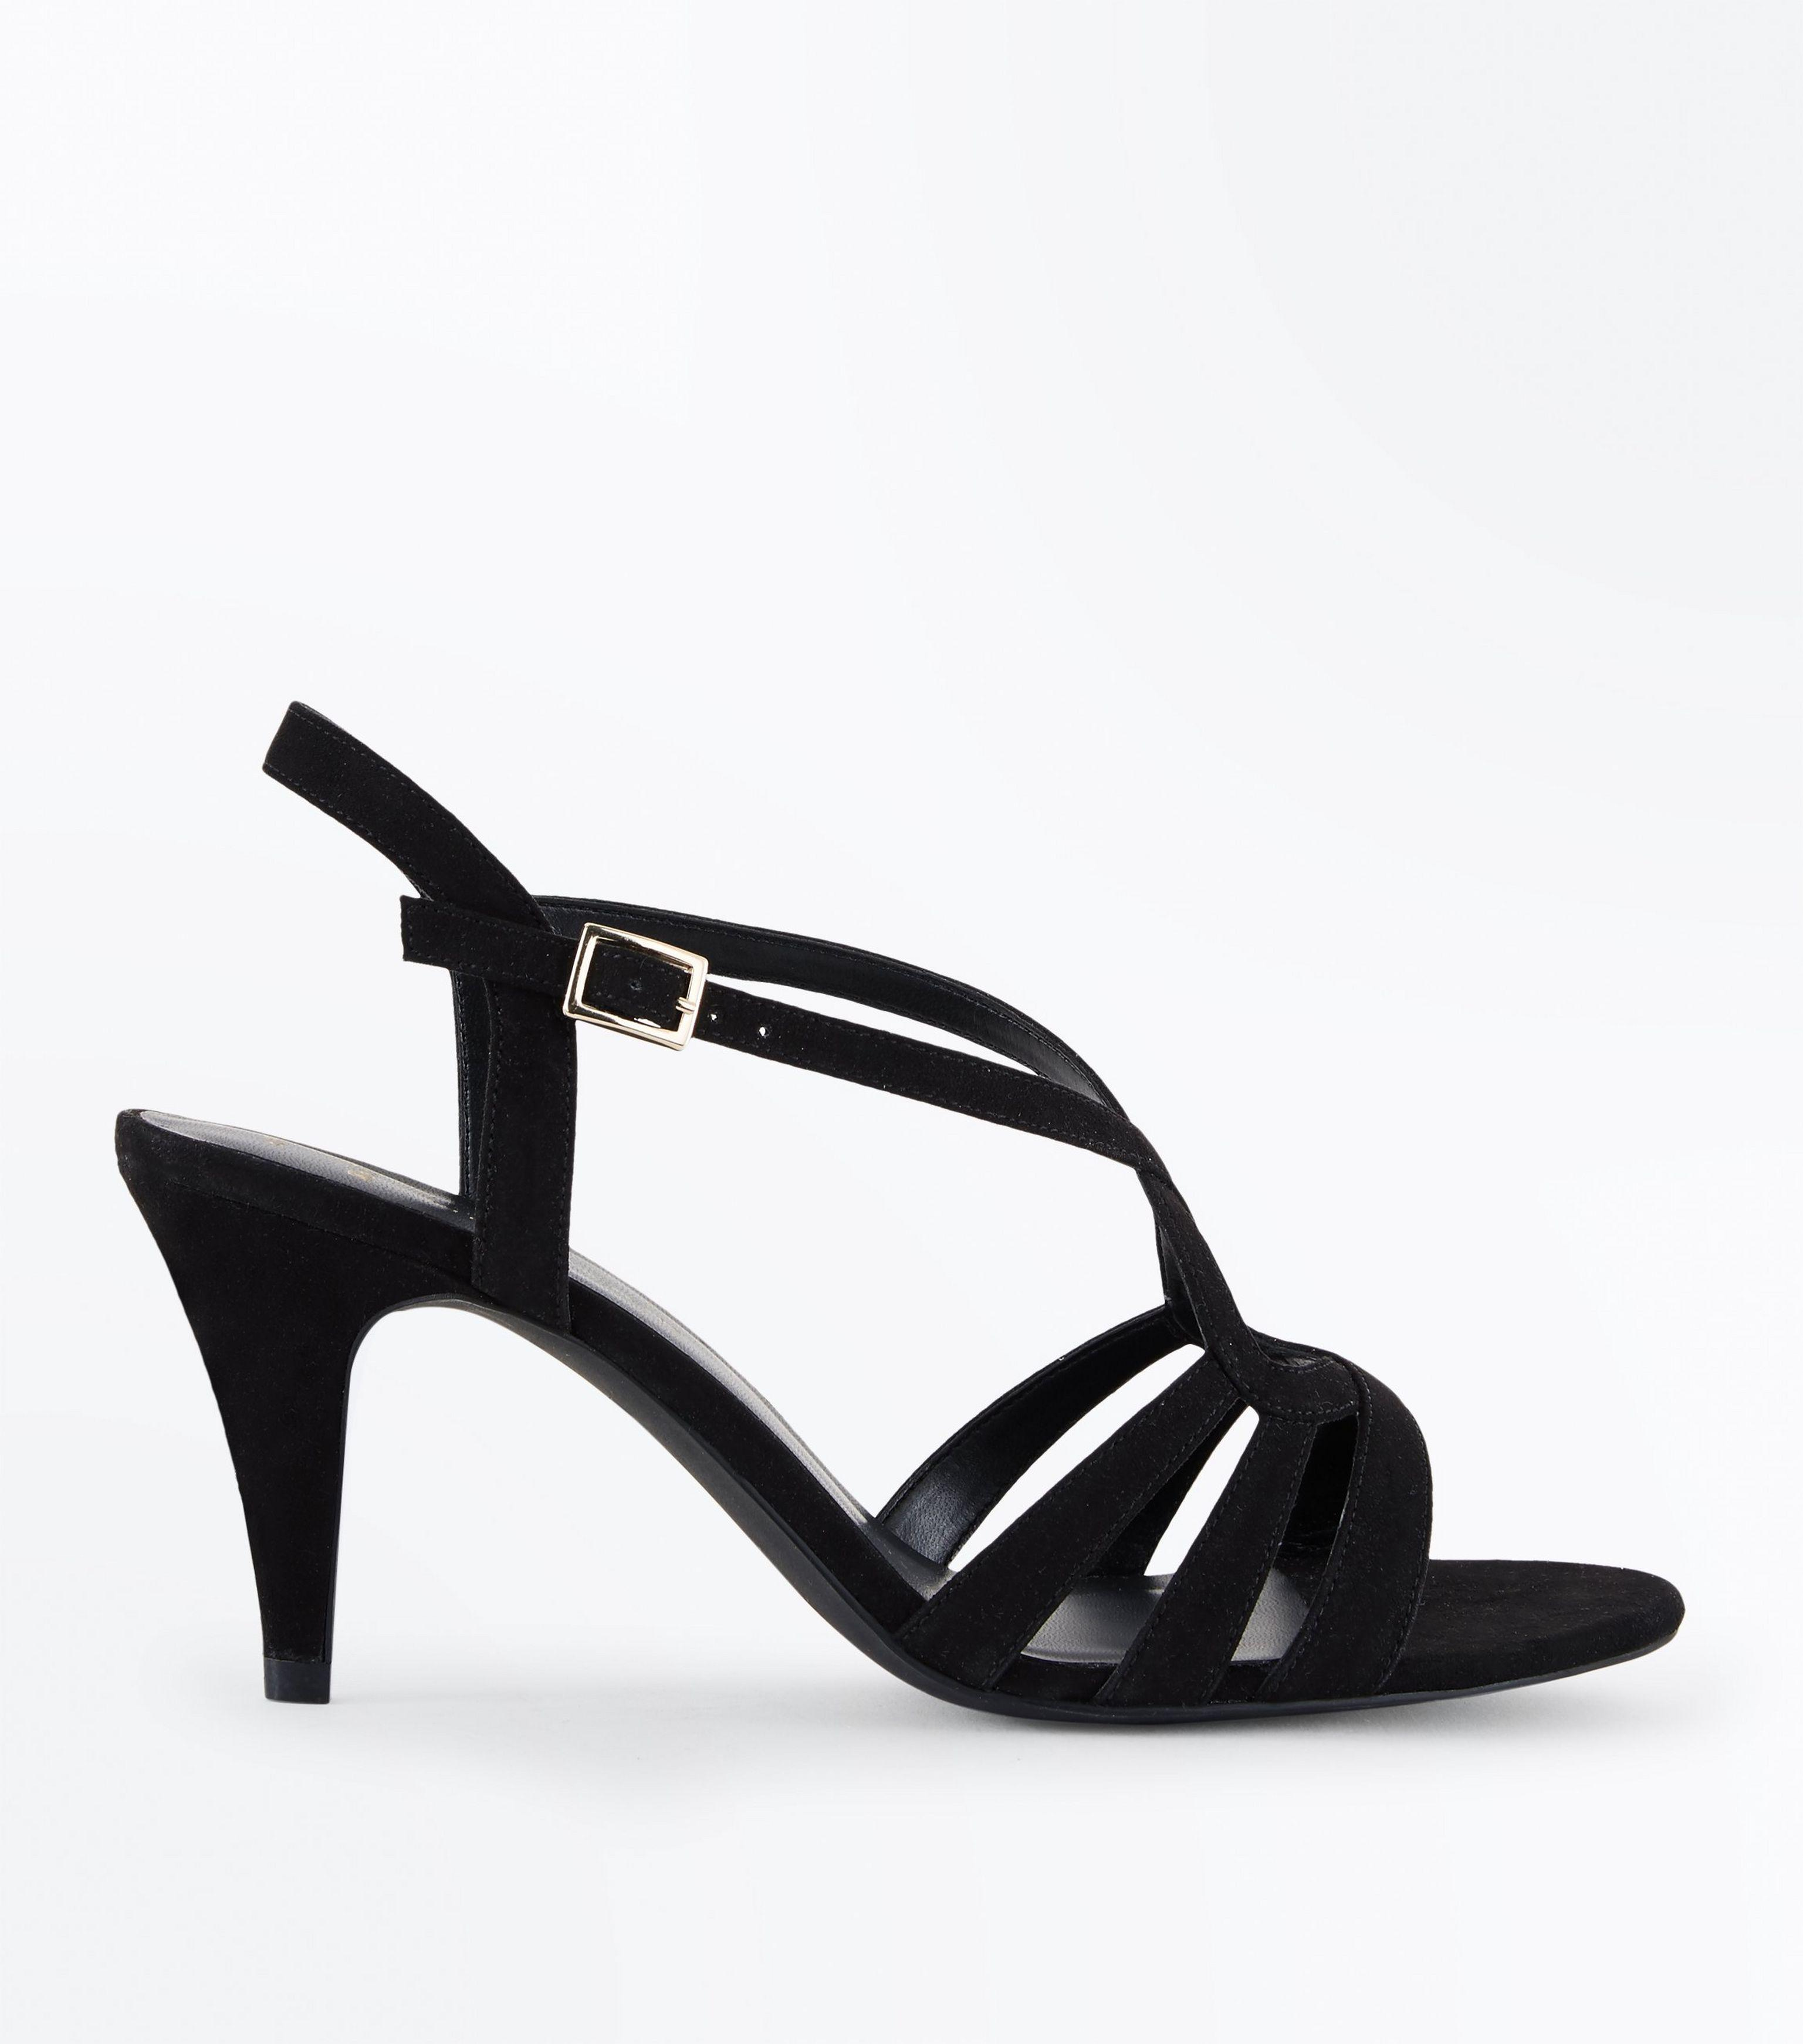 a7be0ca2ef New Look Wide Fit Black Suedette Strappy Heeled Sandals in Black - Lyst